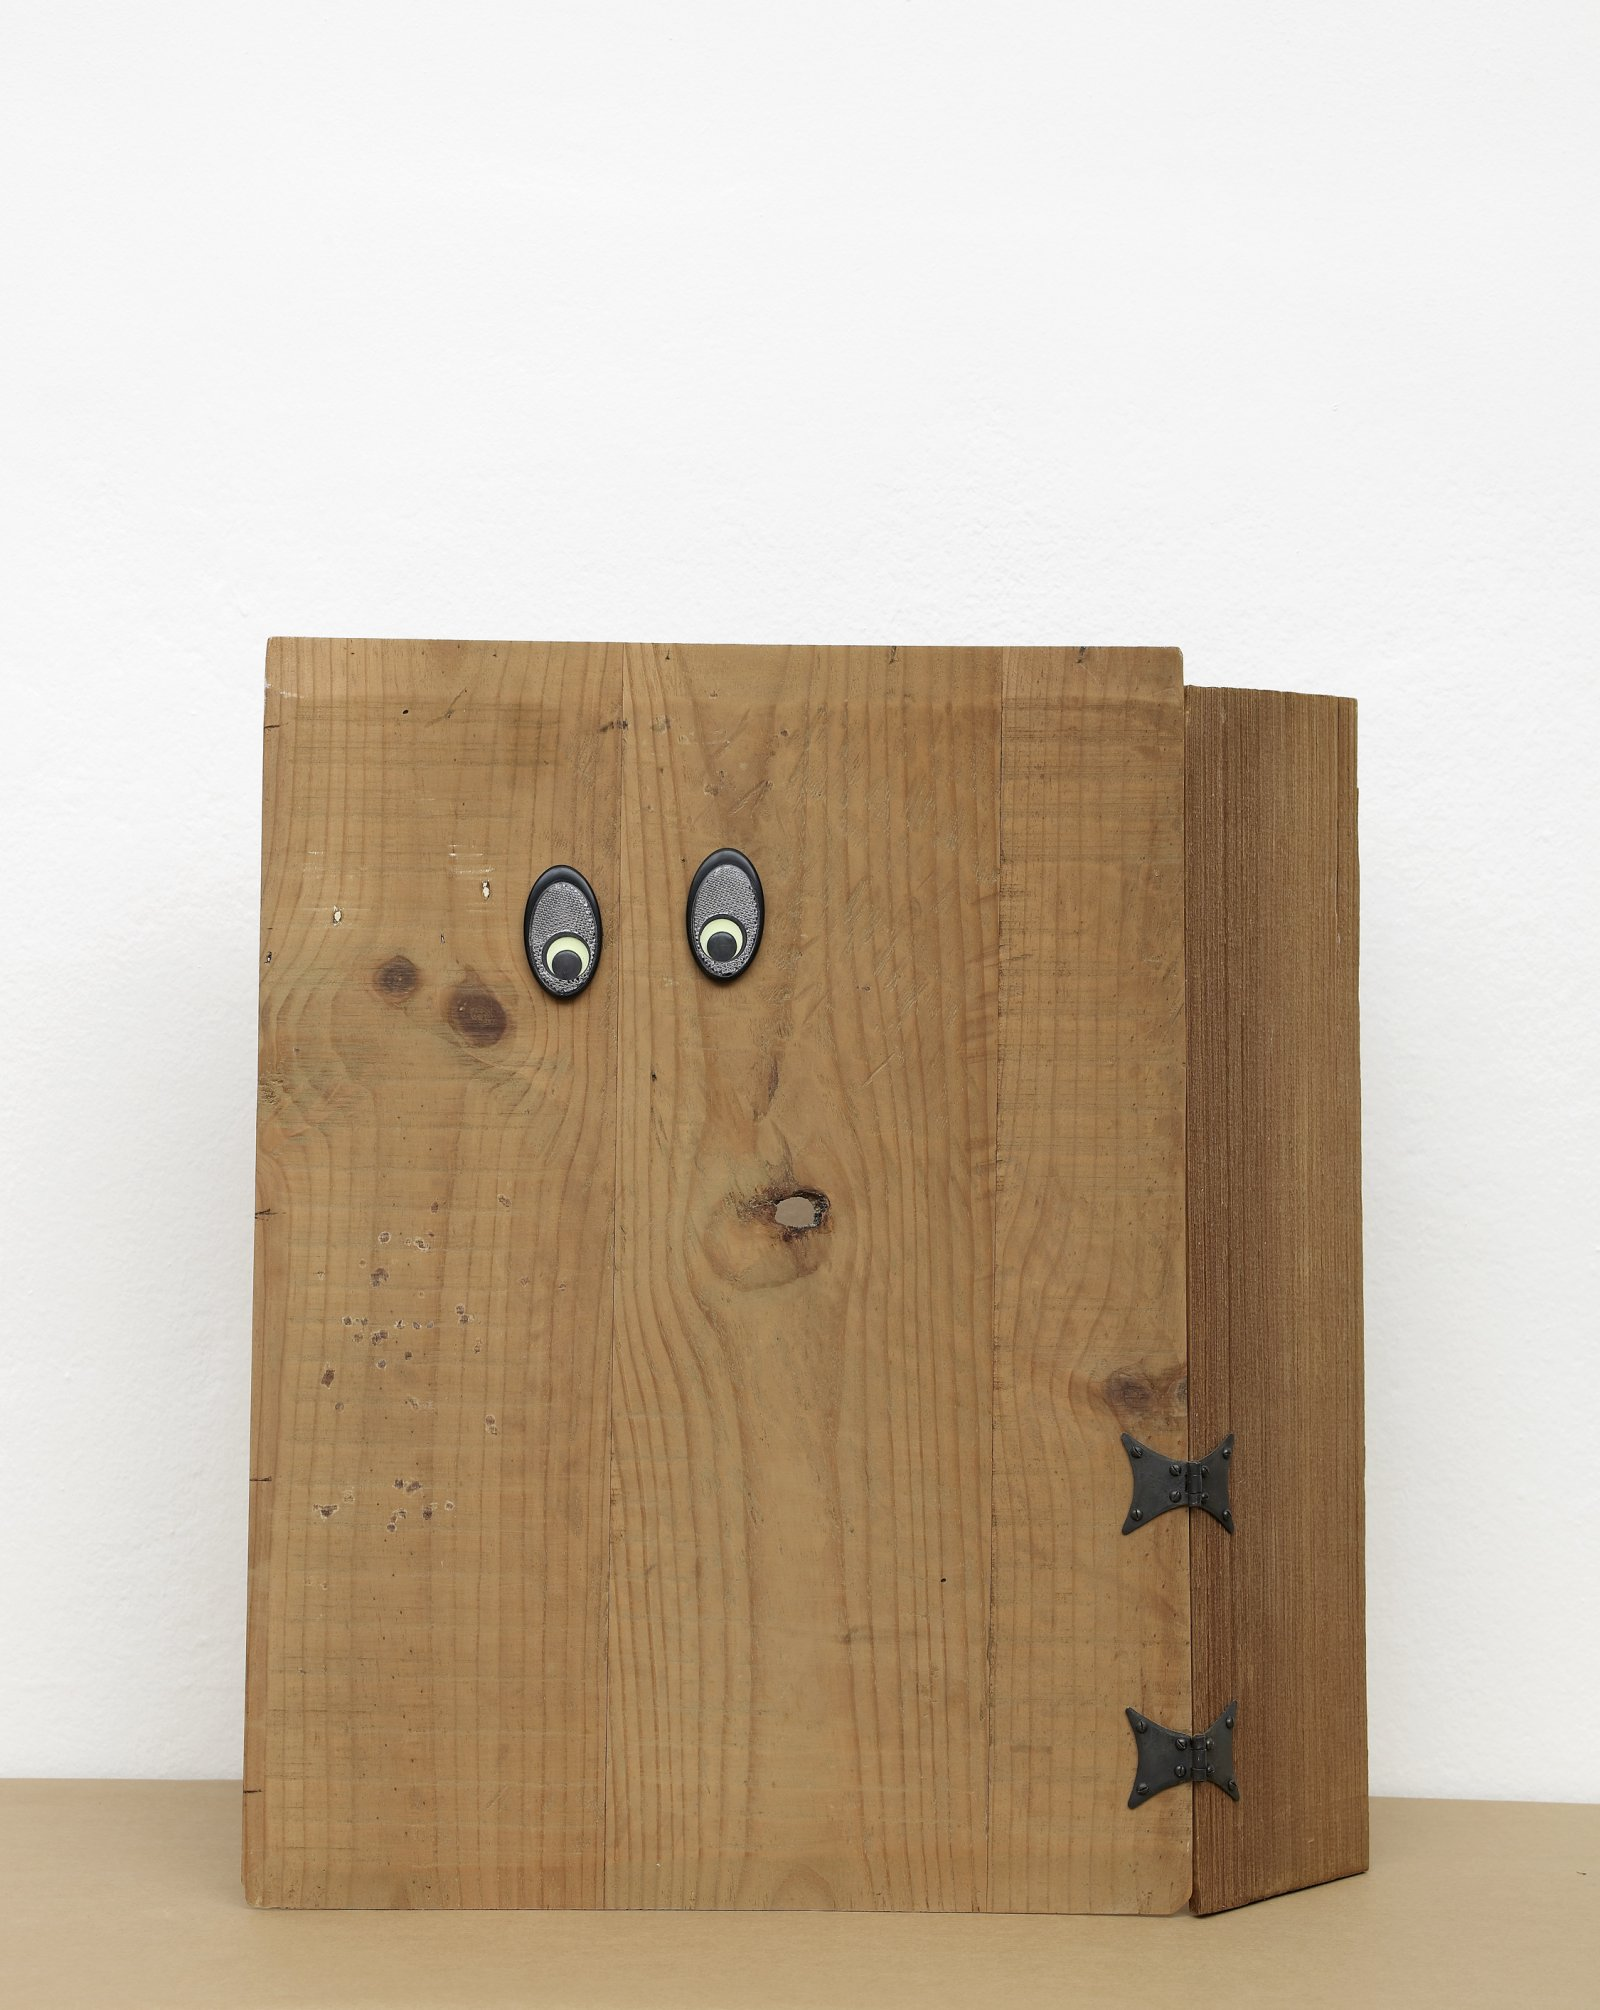 Christina Mackie, Trestle People, 2012, mixed media, dimensions variable. Installation view, Painting the Weights, Chisenhale Gallery, London, UK, 2012 by Christina Mackie